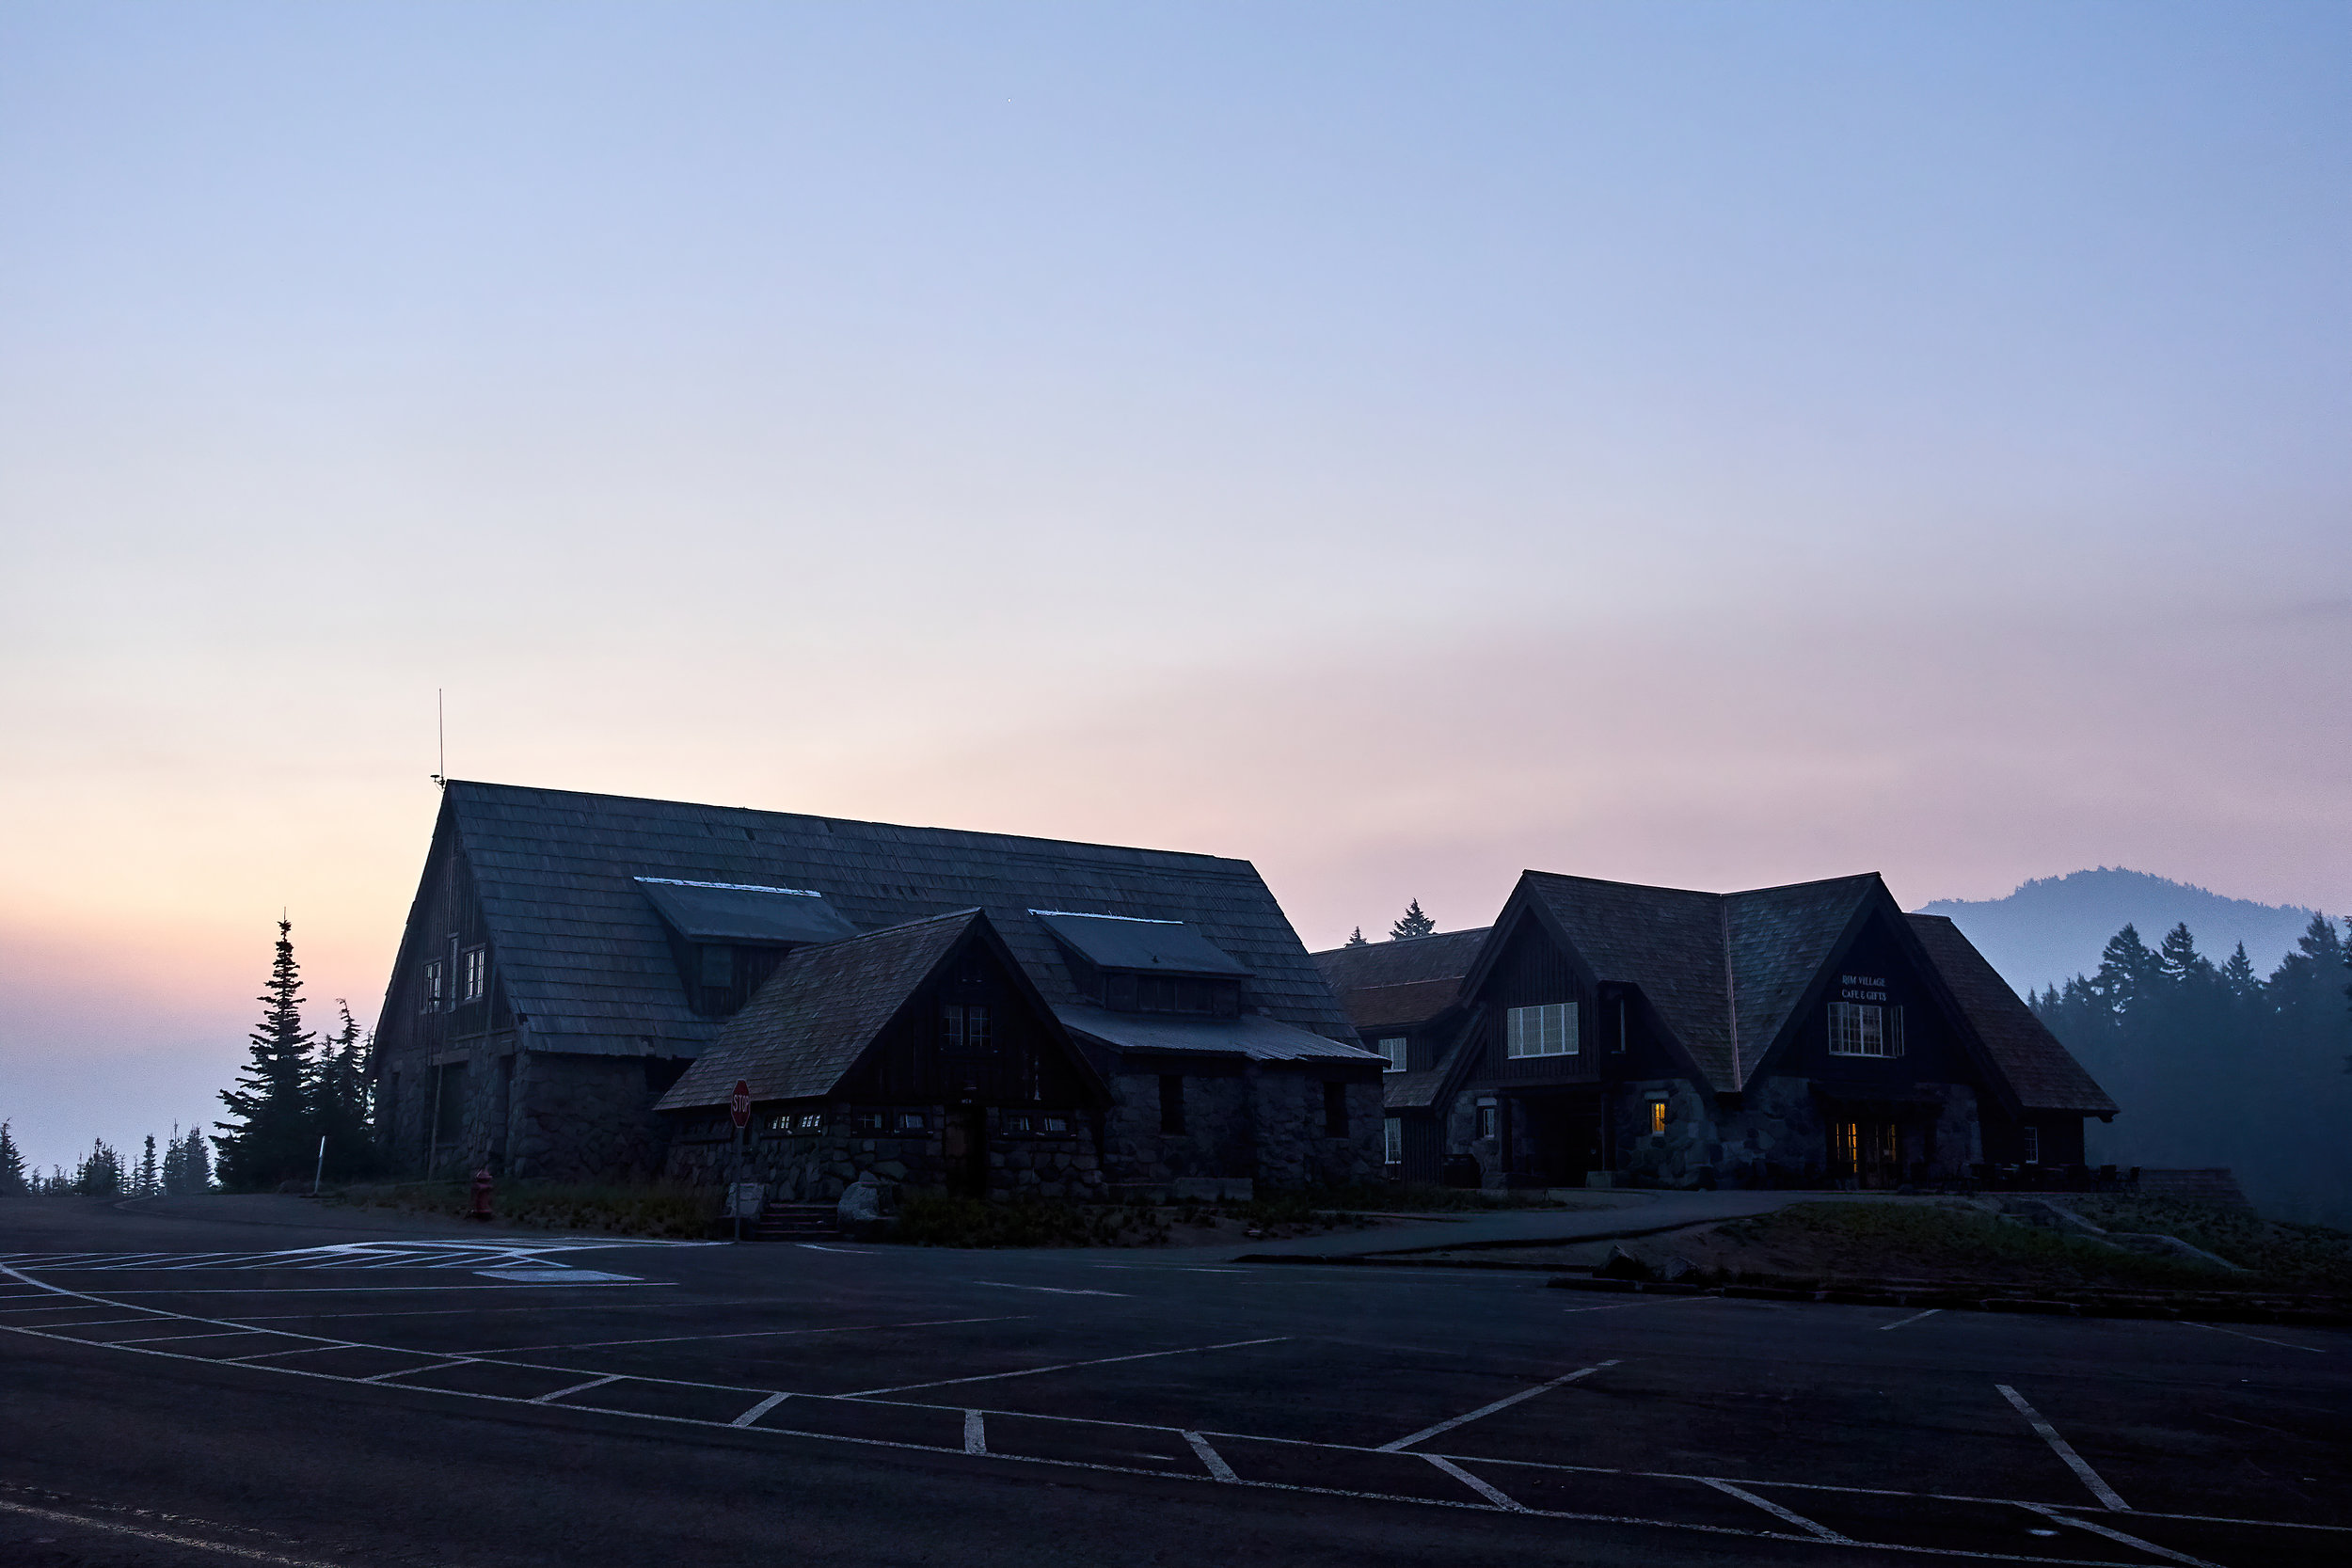 The Crater Lake visitor center in early morning light.